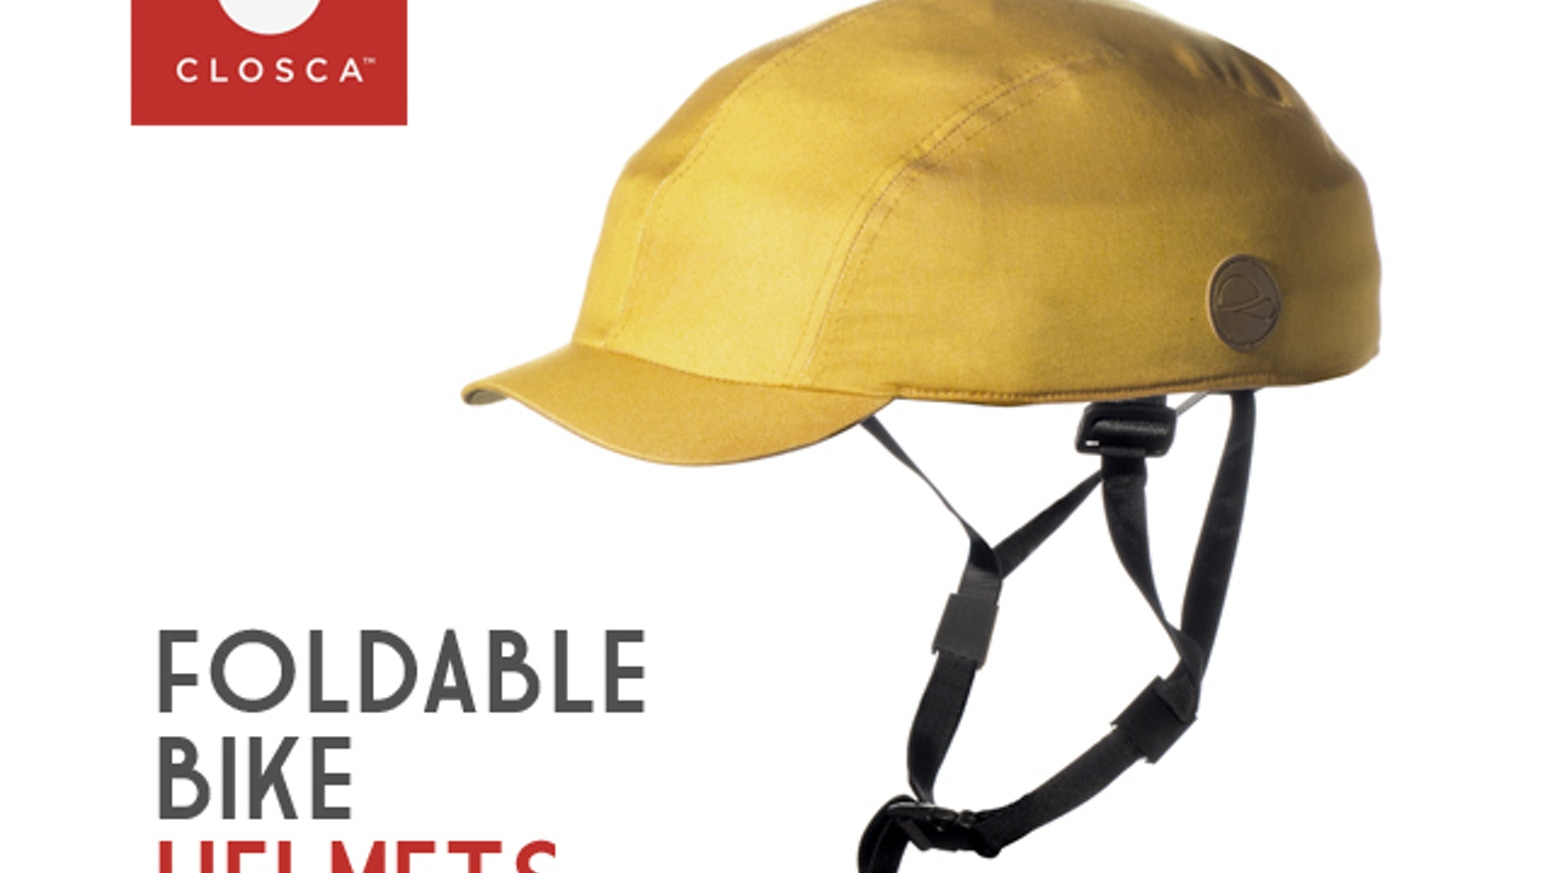 Put the helmet in your bag. Closca collapsible bike helmets merge fashion and safety in one cool bundle. The choice for urban riders!